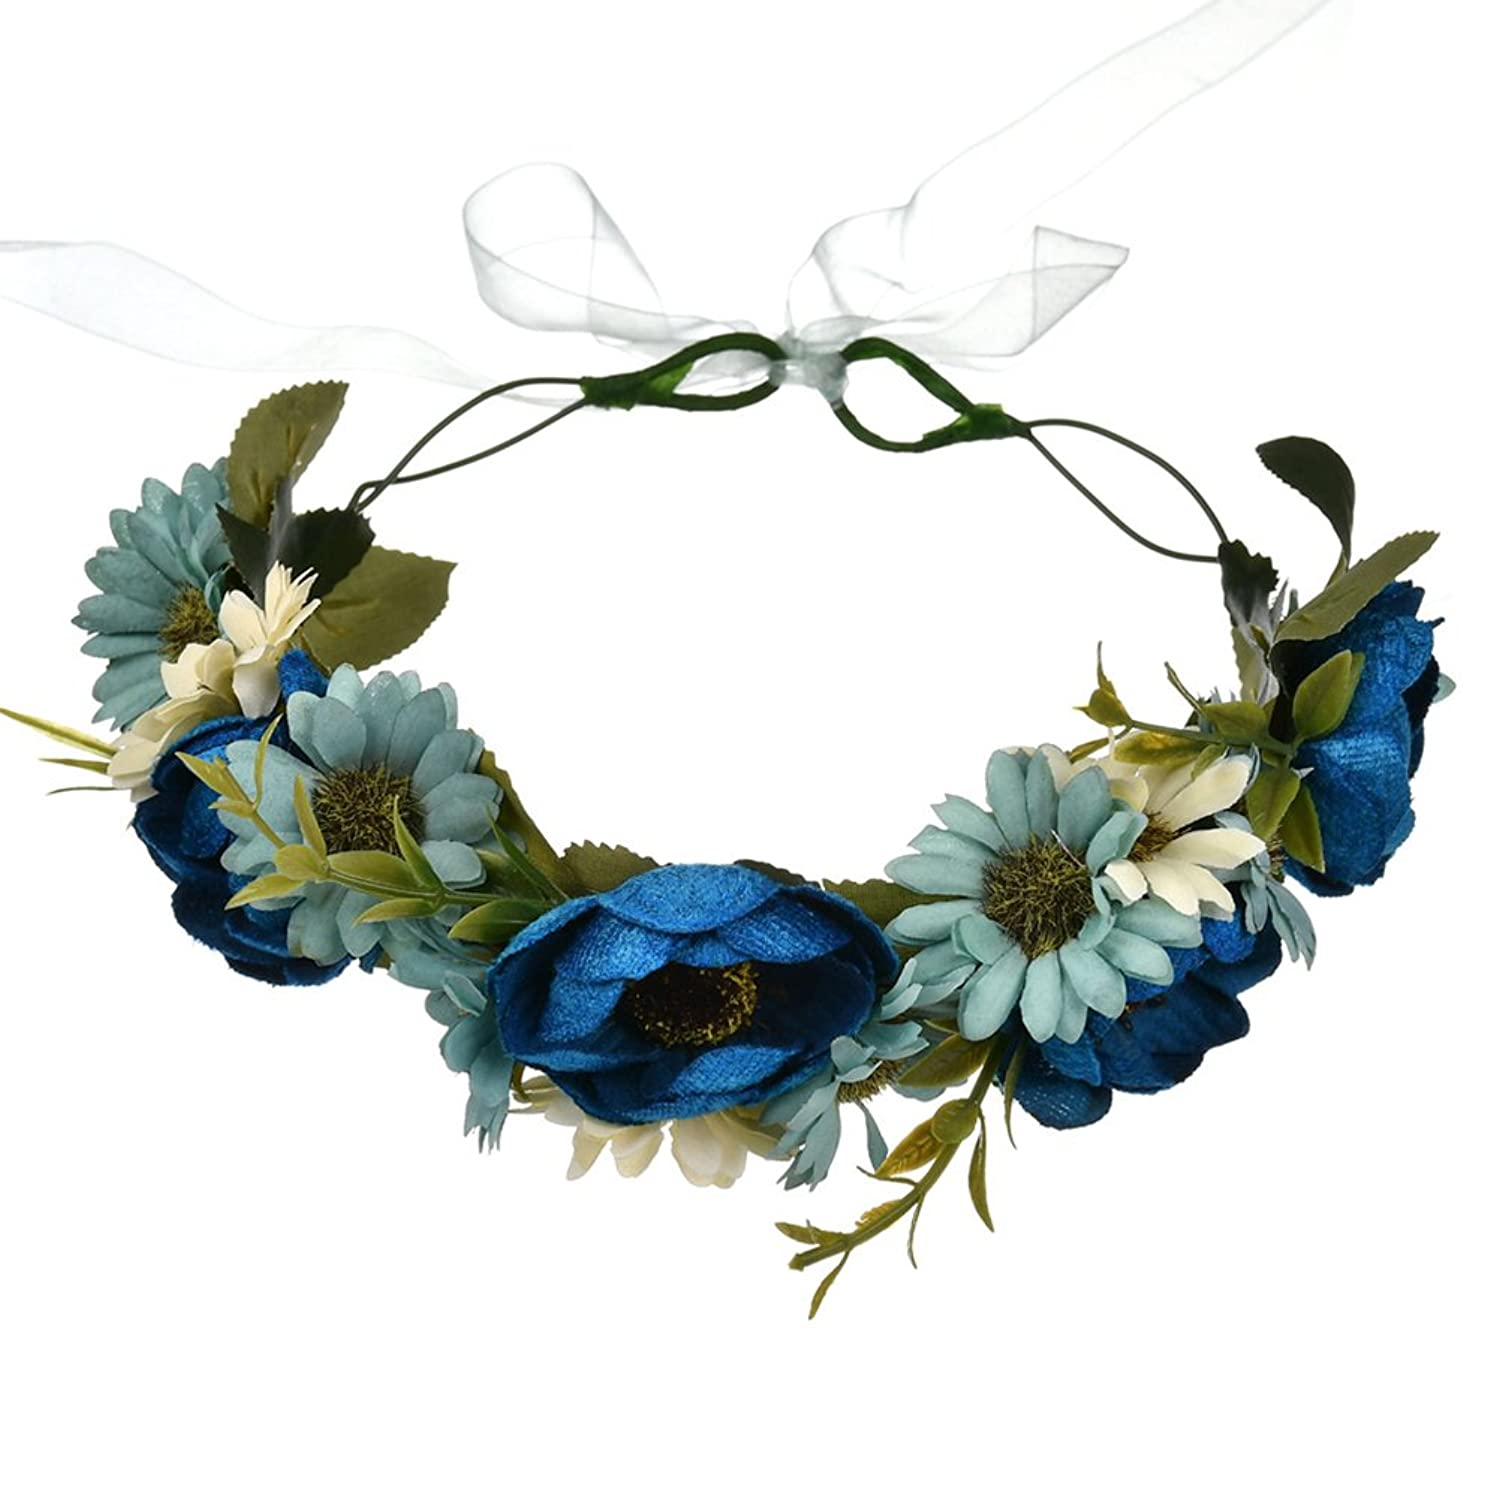 Vivivalue Boho Handmade Flower Headband Hair Wreath Halo Floral